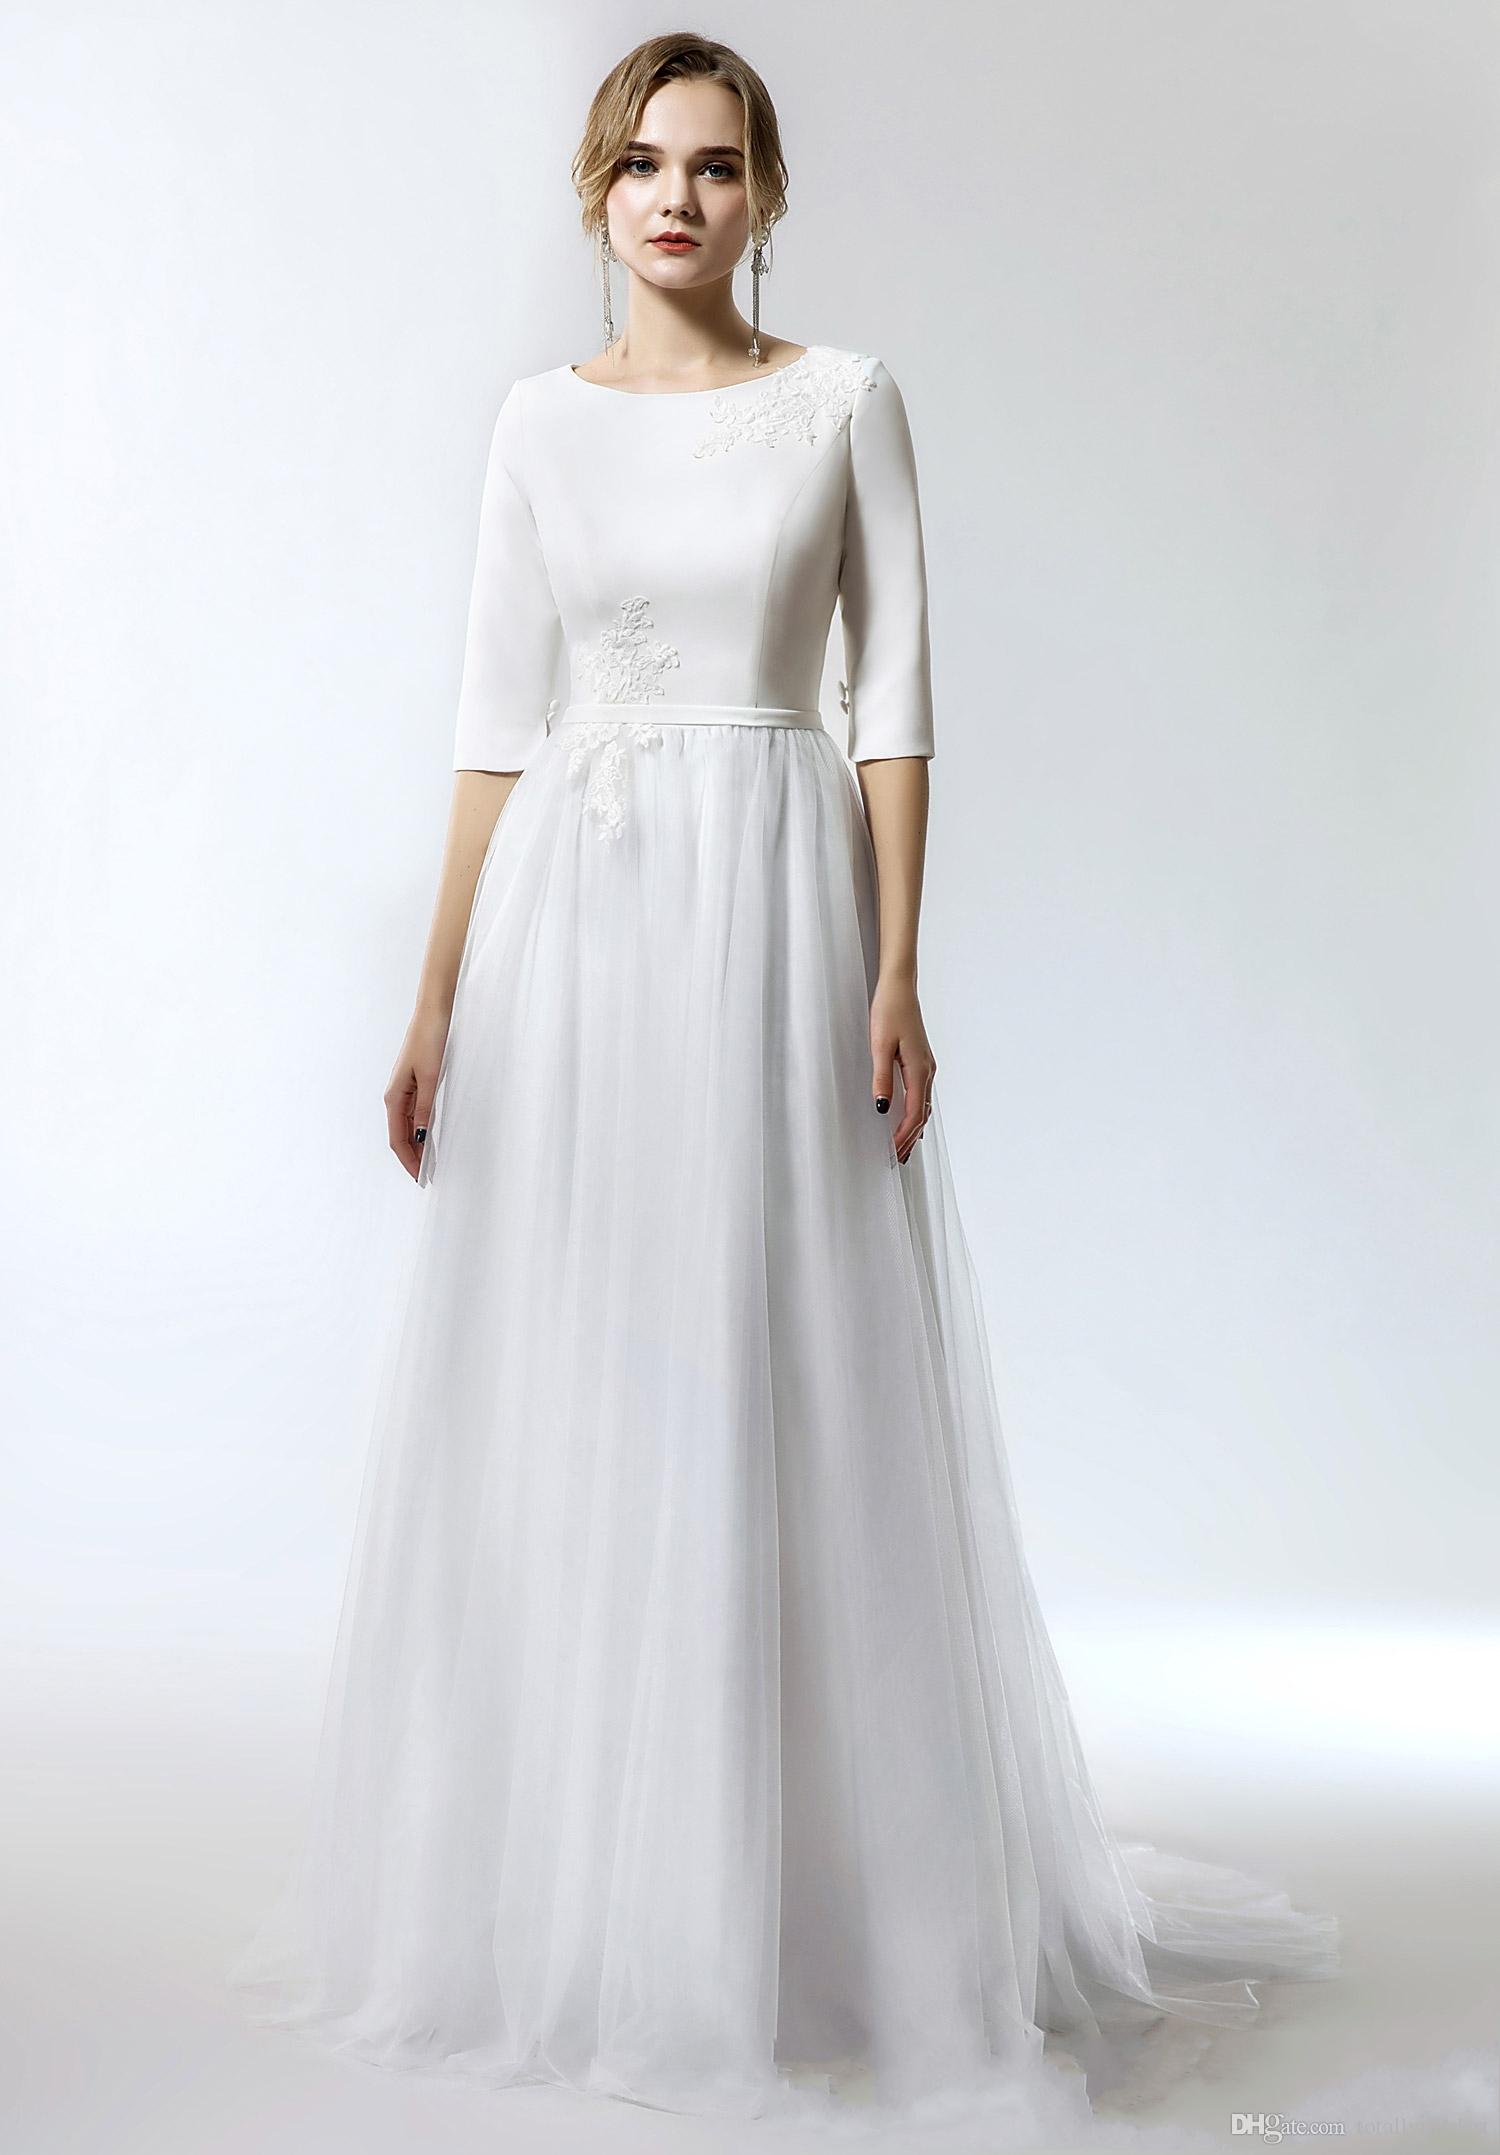 discount 2019 new simple a line long modest wedding dress with 1/2 sleeves  o neck tulle skirt informal modest bridal gowns new arrival simple cheap